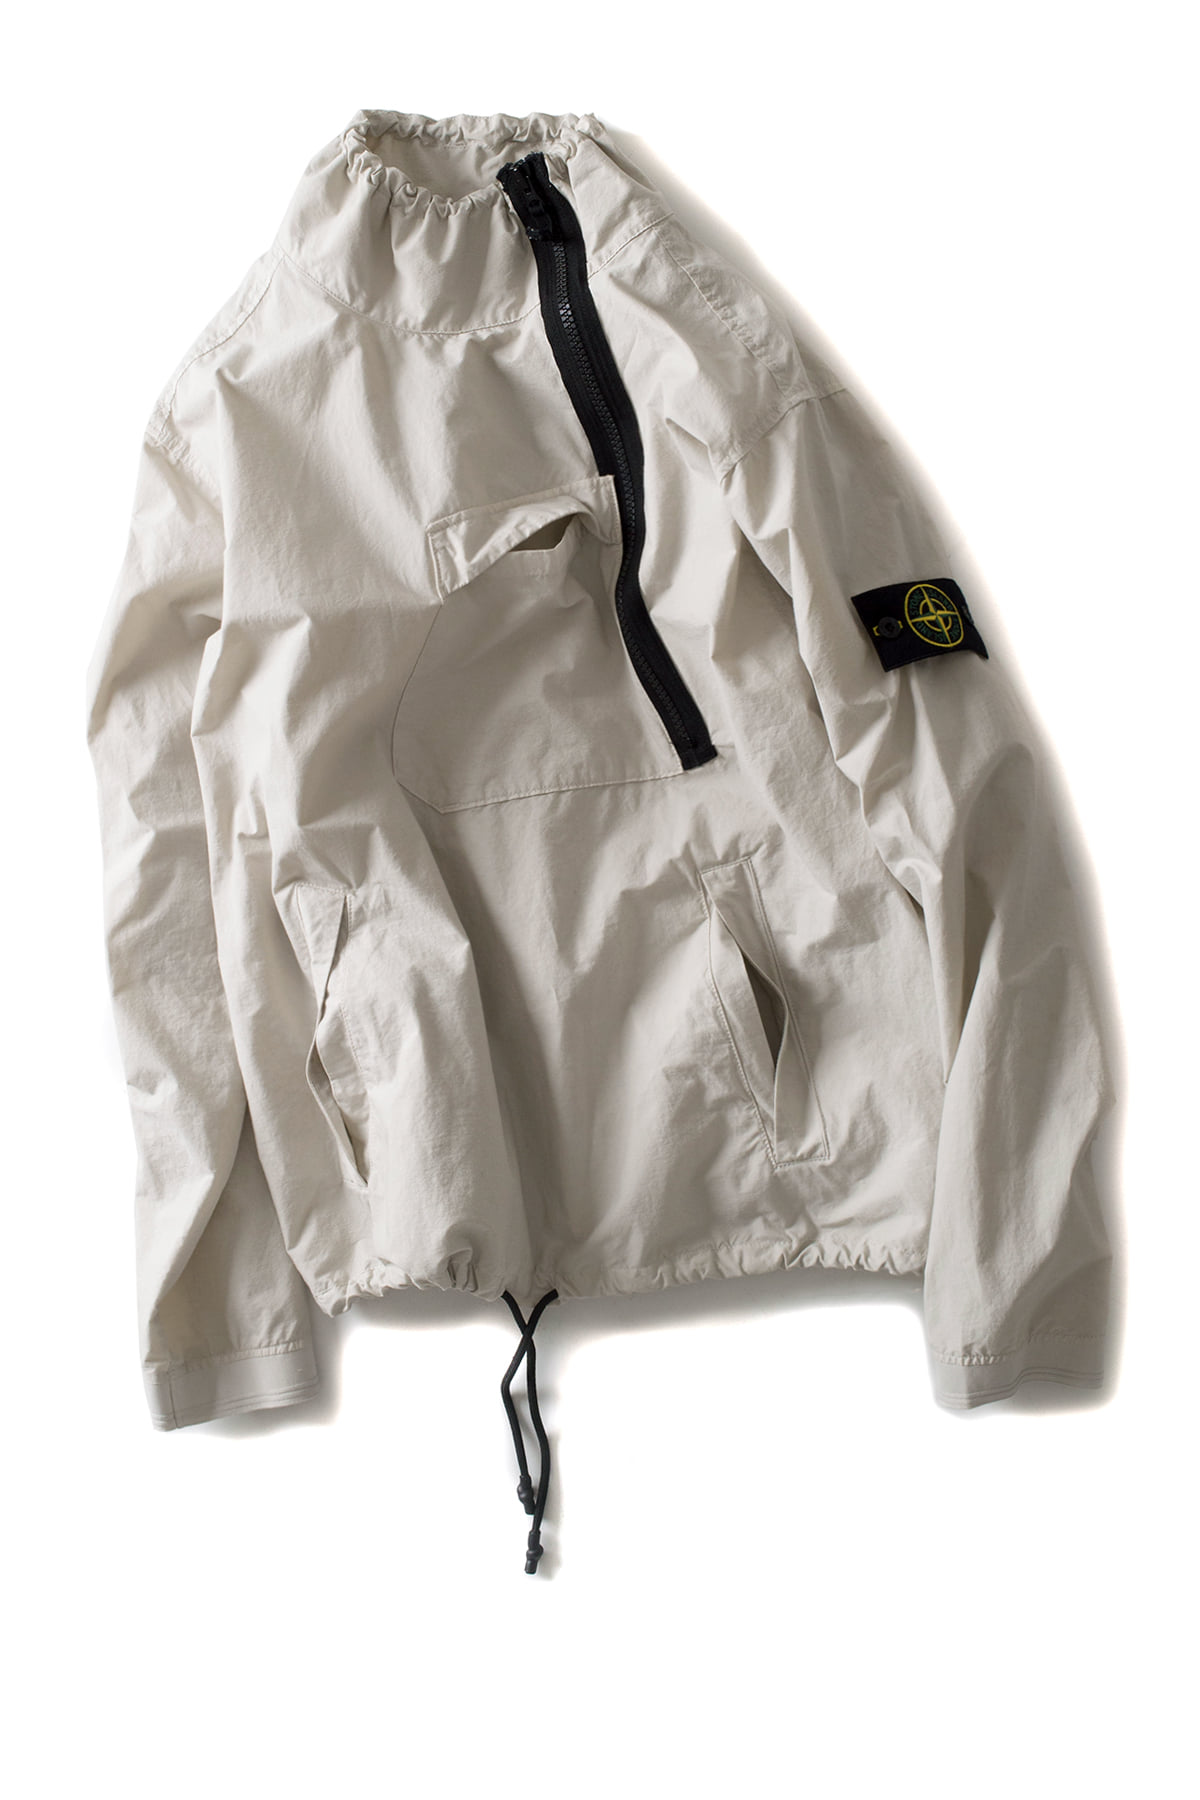 Stone Island : LIGHT COTTON NYLON TWILL (Mastic White)